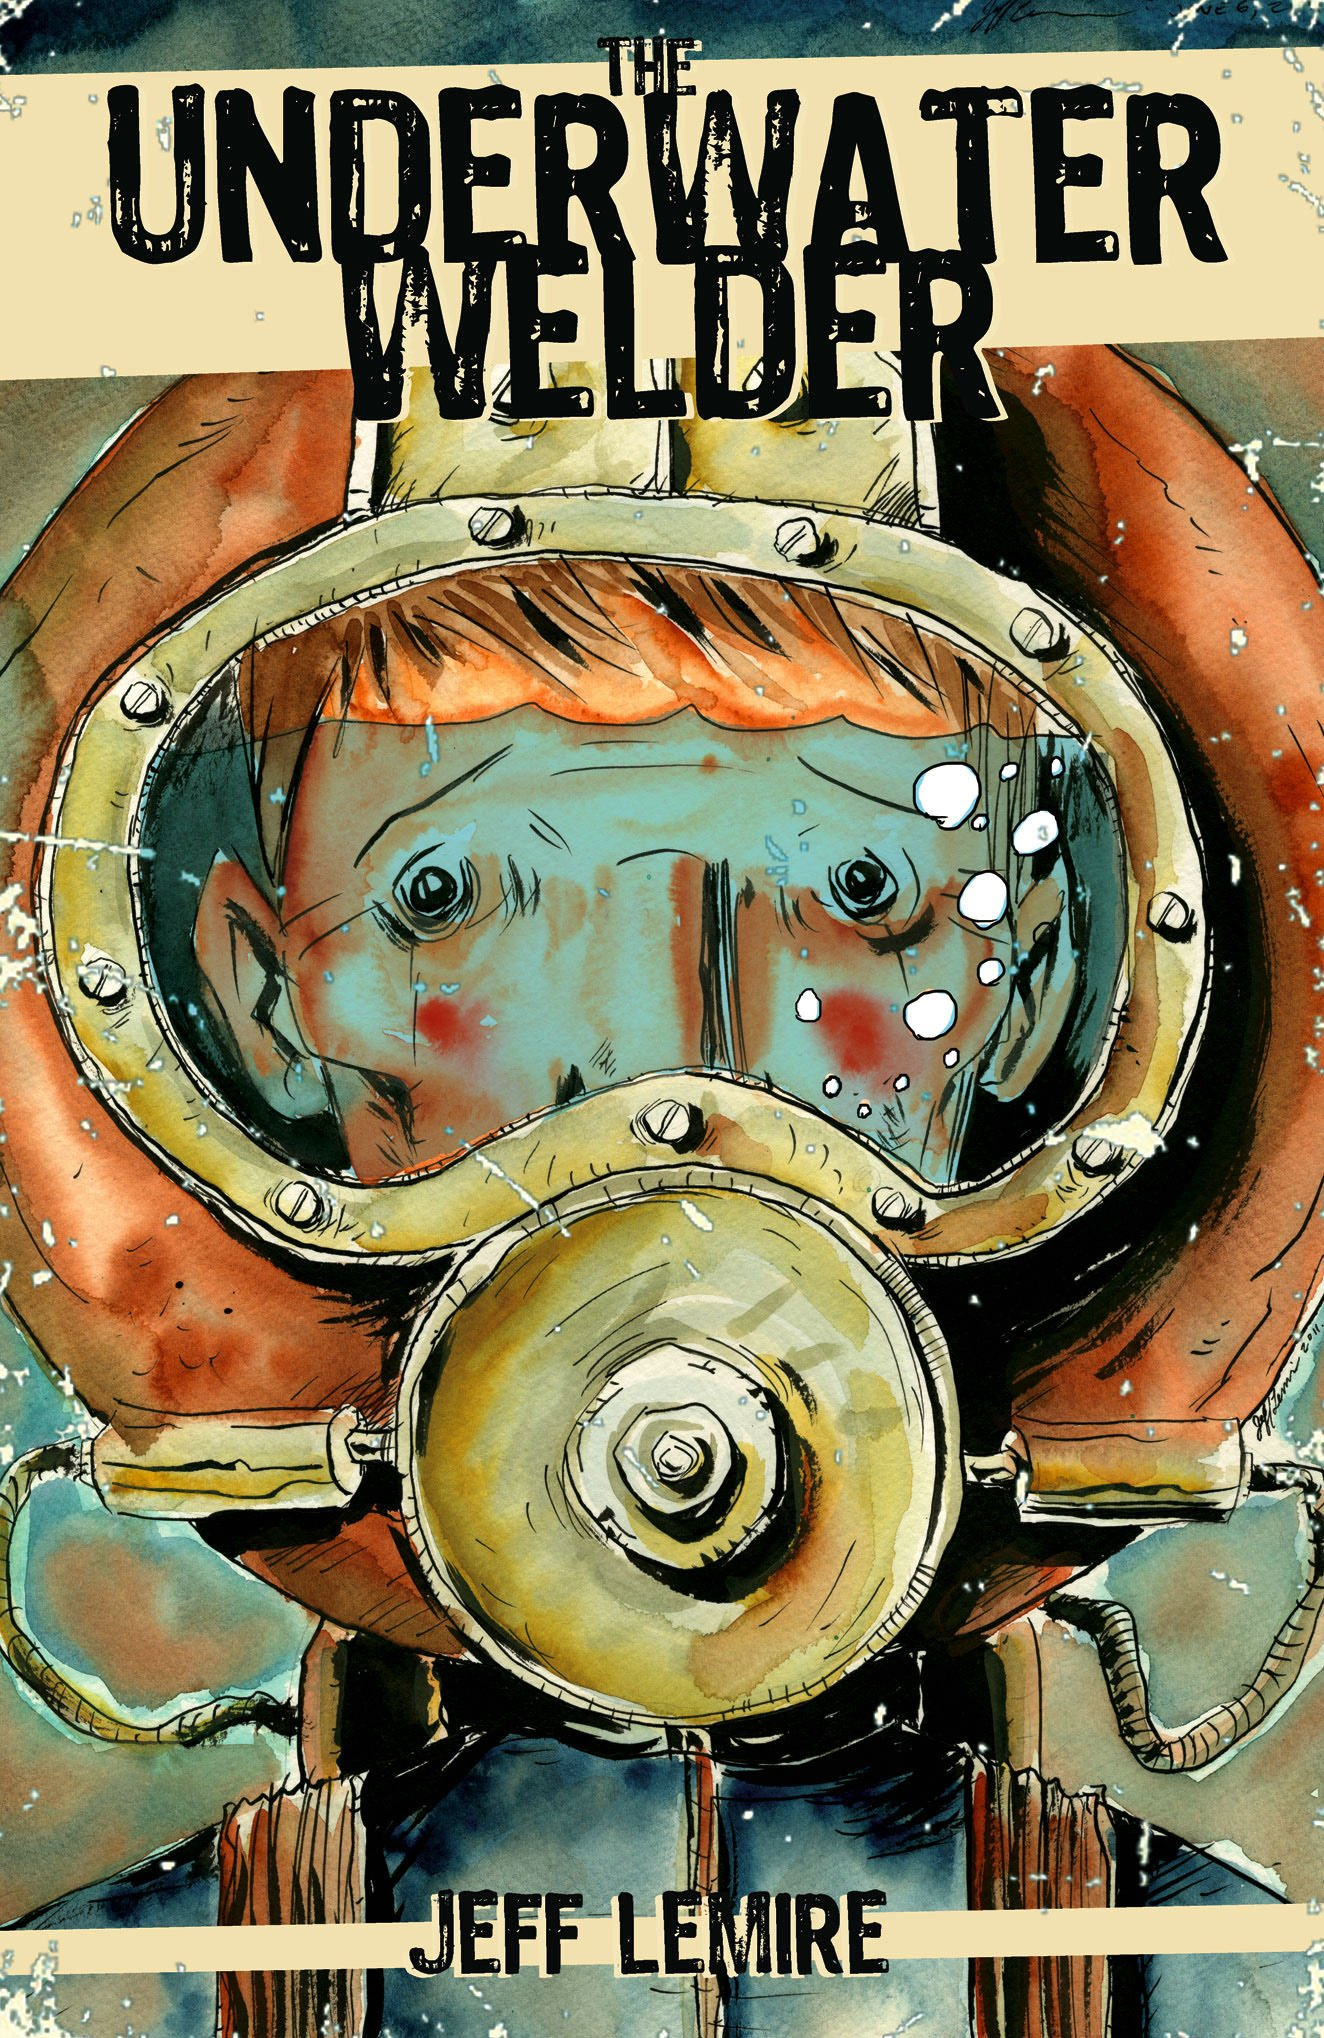 8) The Underwater Welder - The Underwater Welder is a wonderful story on so many levels. It follows the character of Jack Joseph, who, like his father, is an underwater welder that uses his job as an excuse to spend time away from his pregnant wife and the fear of fatherhood. Jeff Lemire's graphic novel is a heart-wrenching tale of father and son buoyed by a magnificent use of the medium. It ingeniously manipulates artistic techniques and panel design to shape the tone, an example being the portrayal of land and home as sharp and confined, whereas the ocean is open and dreamlike. Ultimately, these two worlds collide as Jack is forced to reconcile his father's disappearance and his own childhood with the approaching birth of his son.